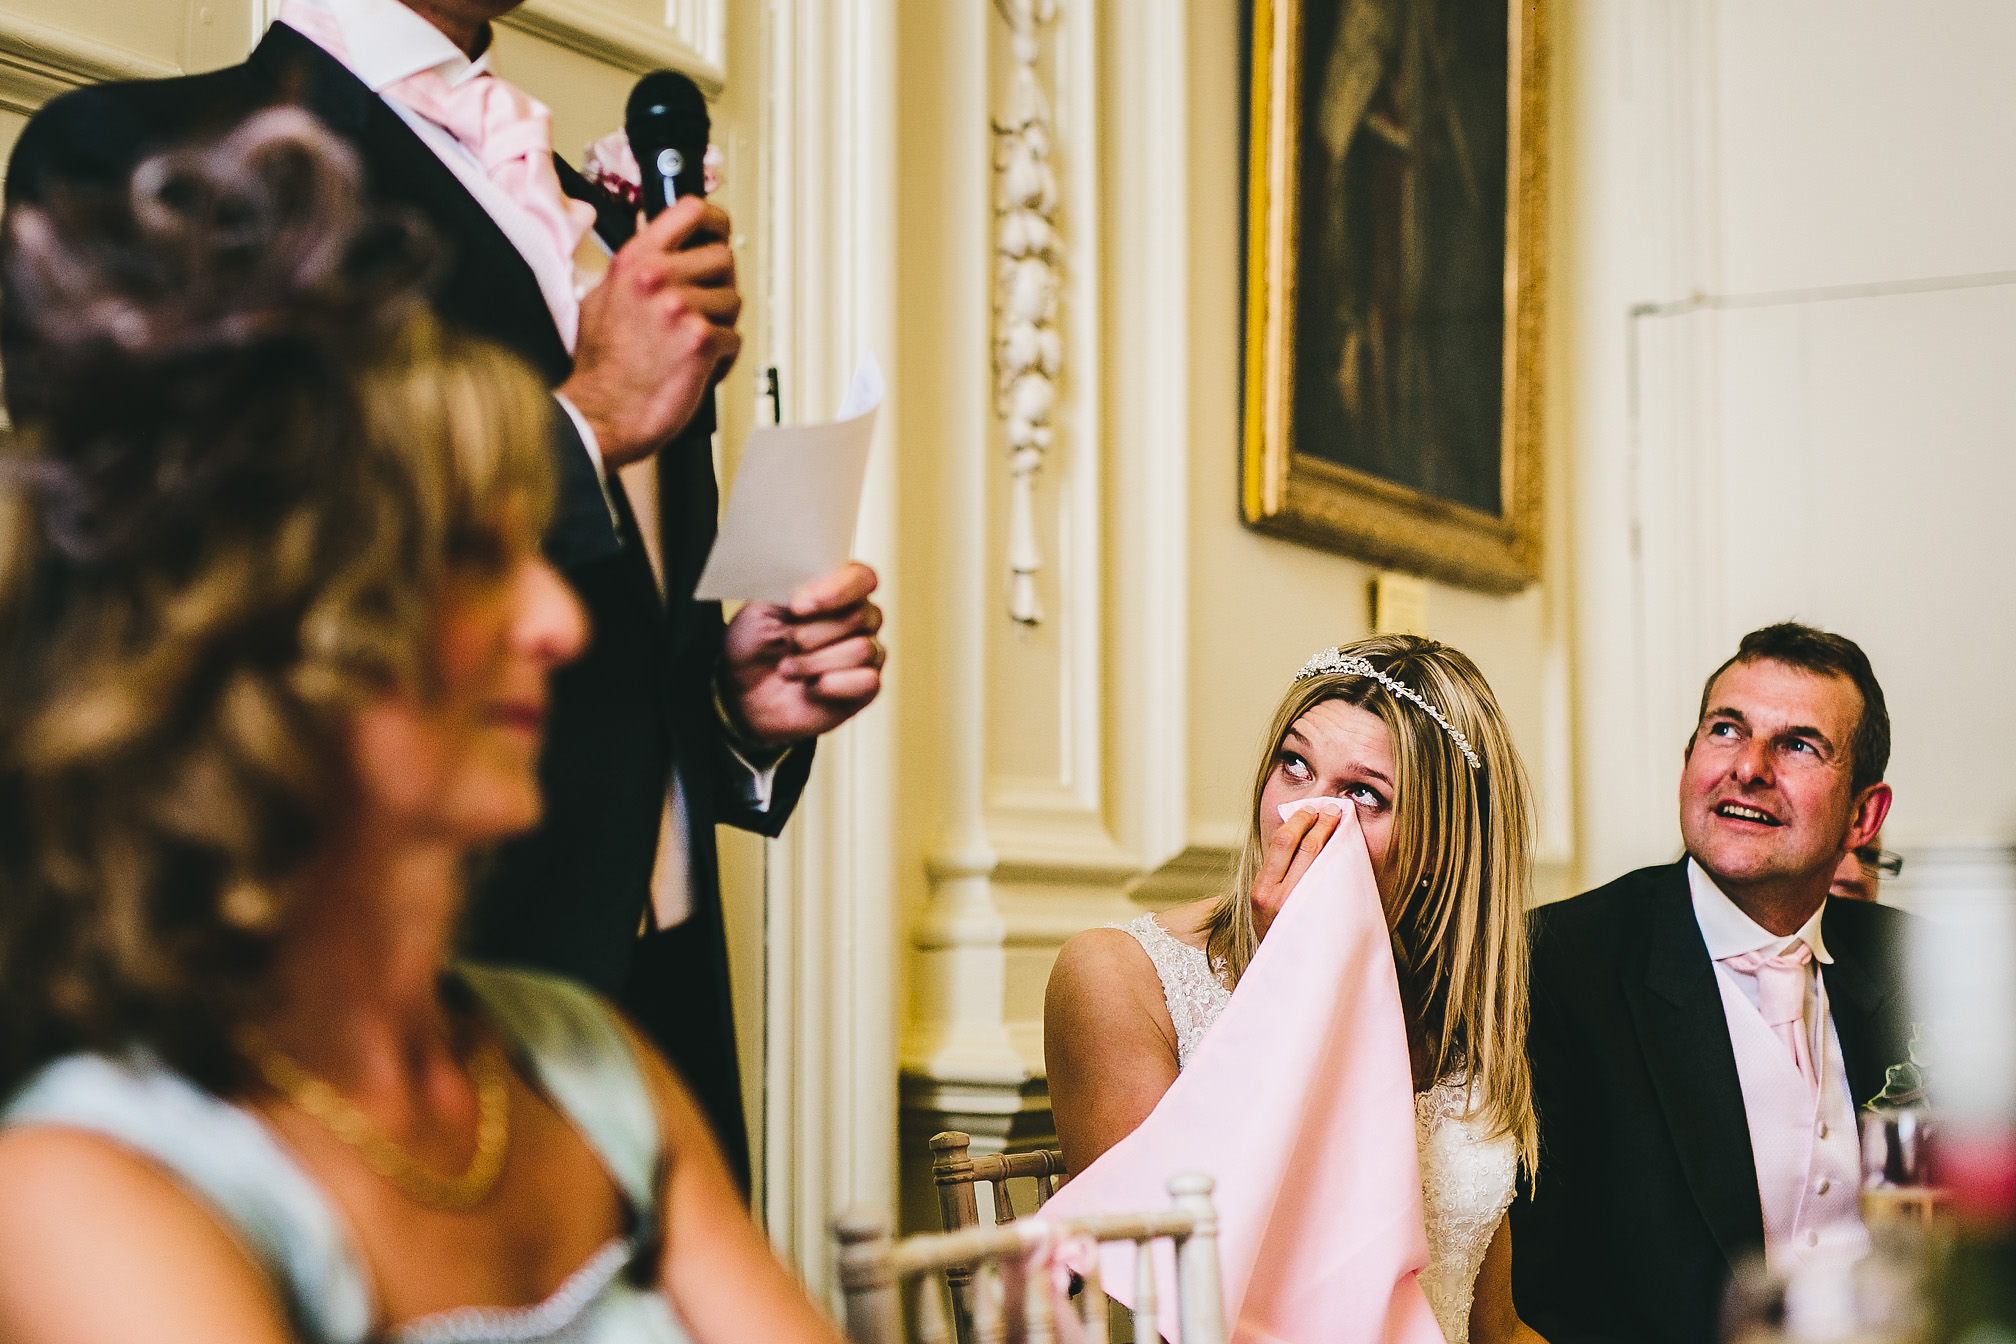 Bride crying during the groomsman speeches